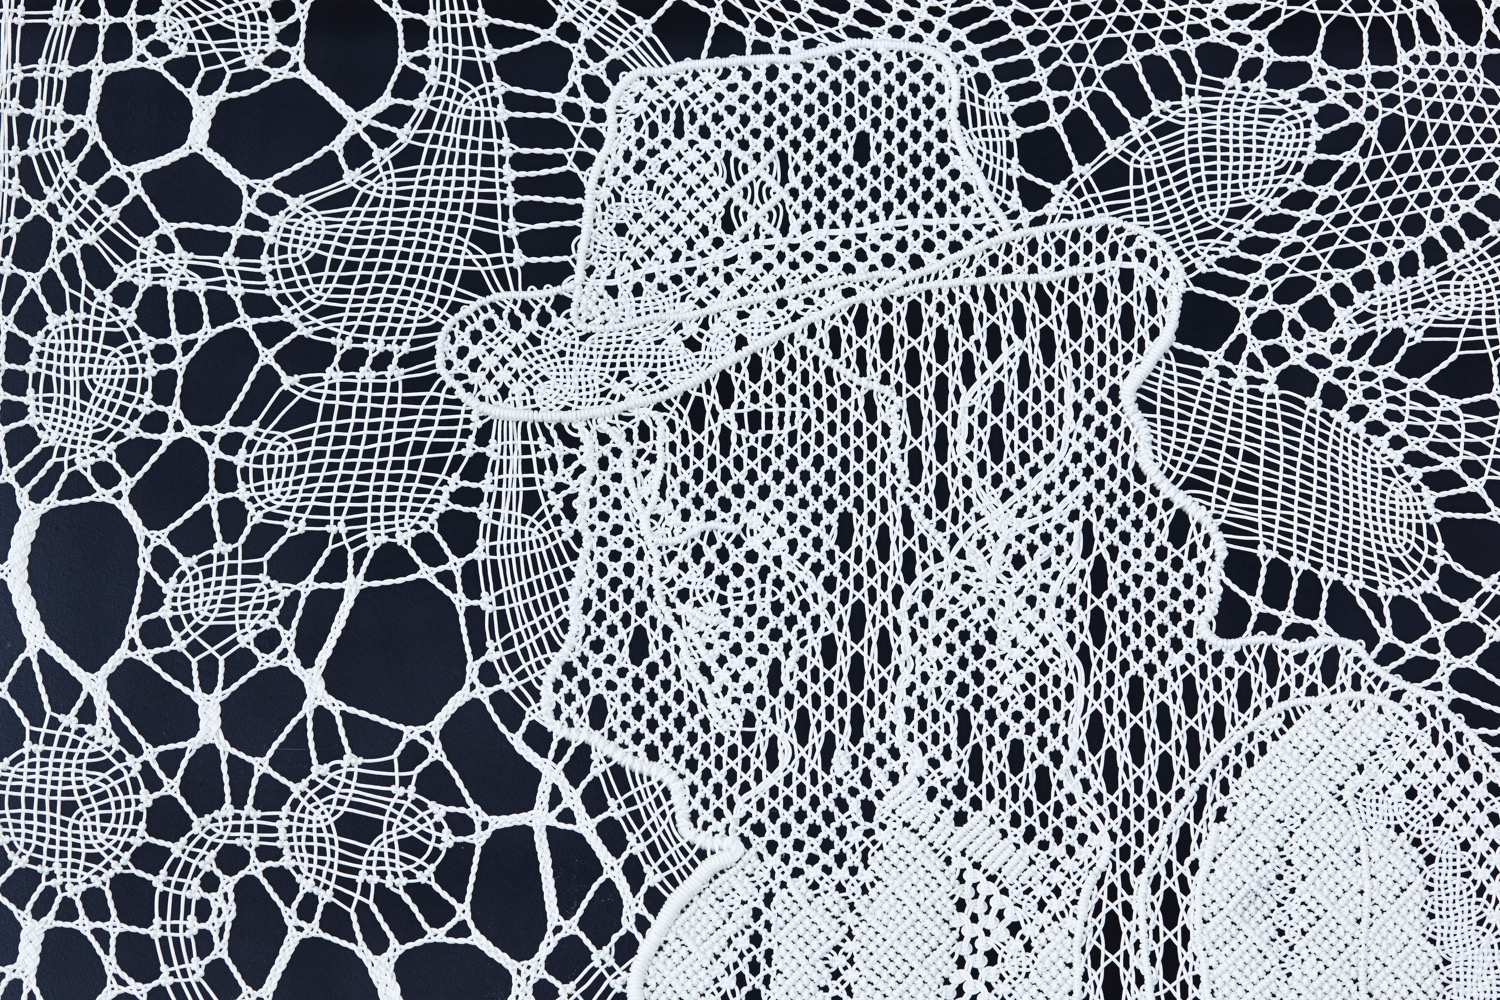 Pierre Fouché. Brett posing for an imaginary portrait of Raymond Buys (2015). Bobbin lace and macramé in polyester braid. 265 x 140cm. Private collection.